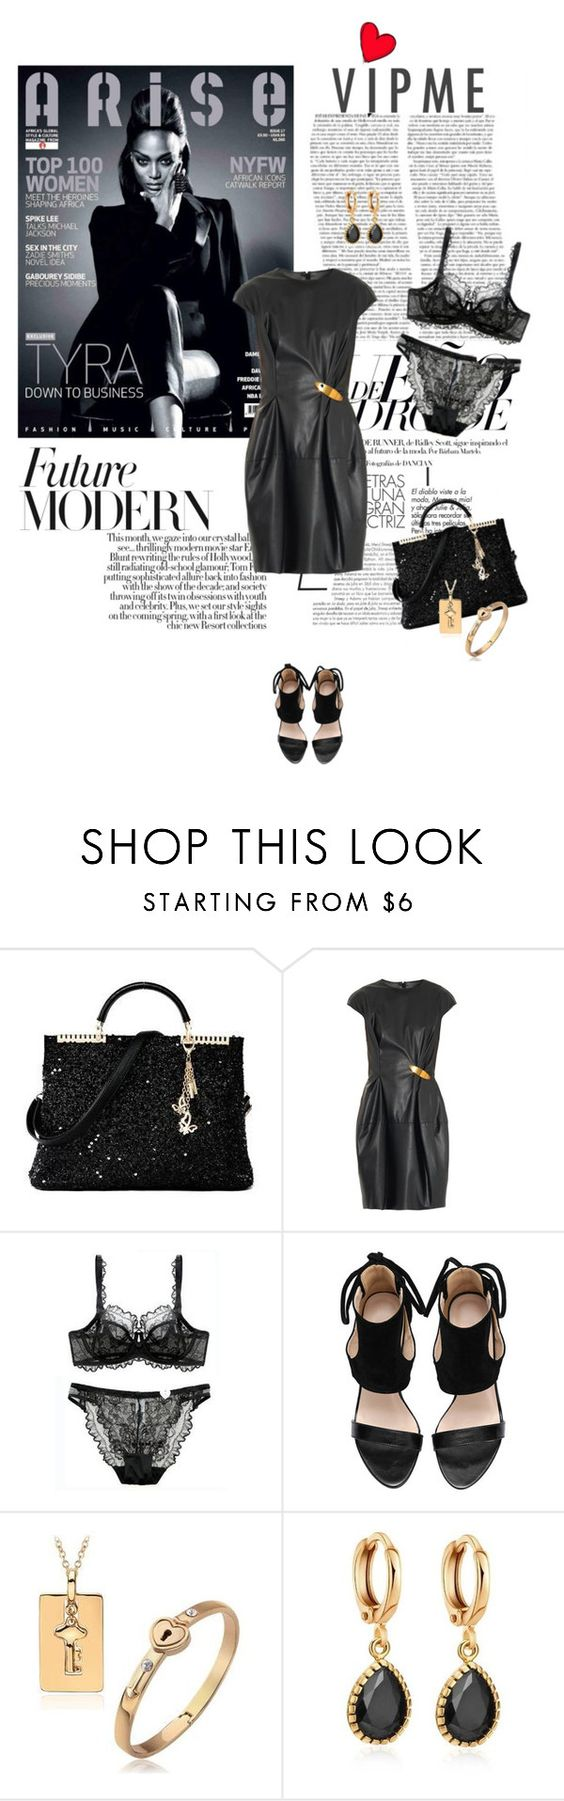 """""""LBD with VIPme Accessories"""" by lacas ❤ liked on Polyvore featuring November, Lanvin, women's clothing, women, female, woman, misses, juniors and vipme"""